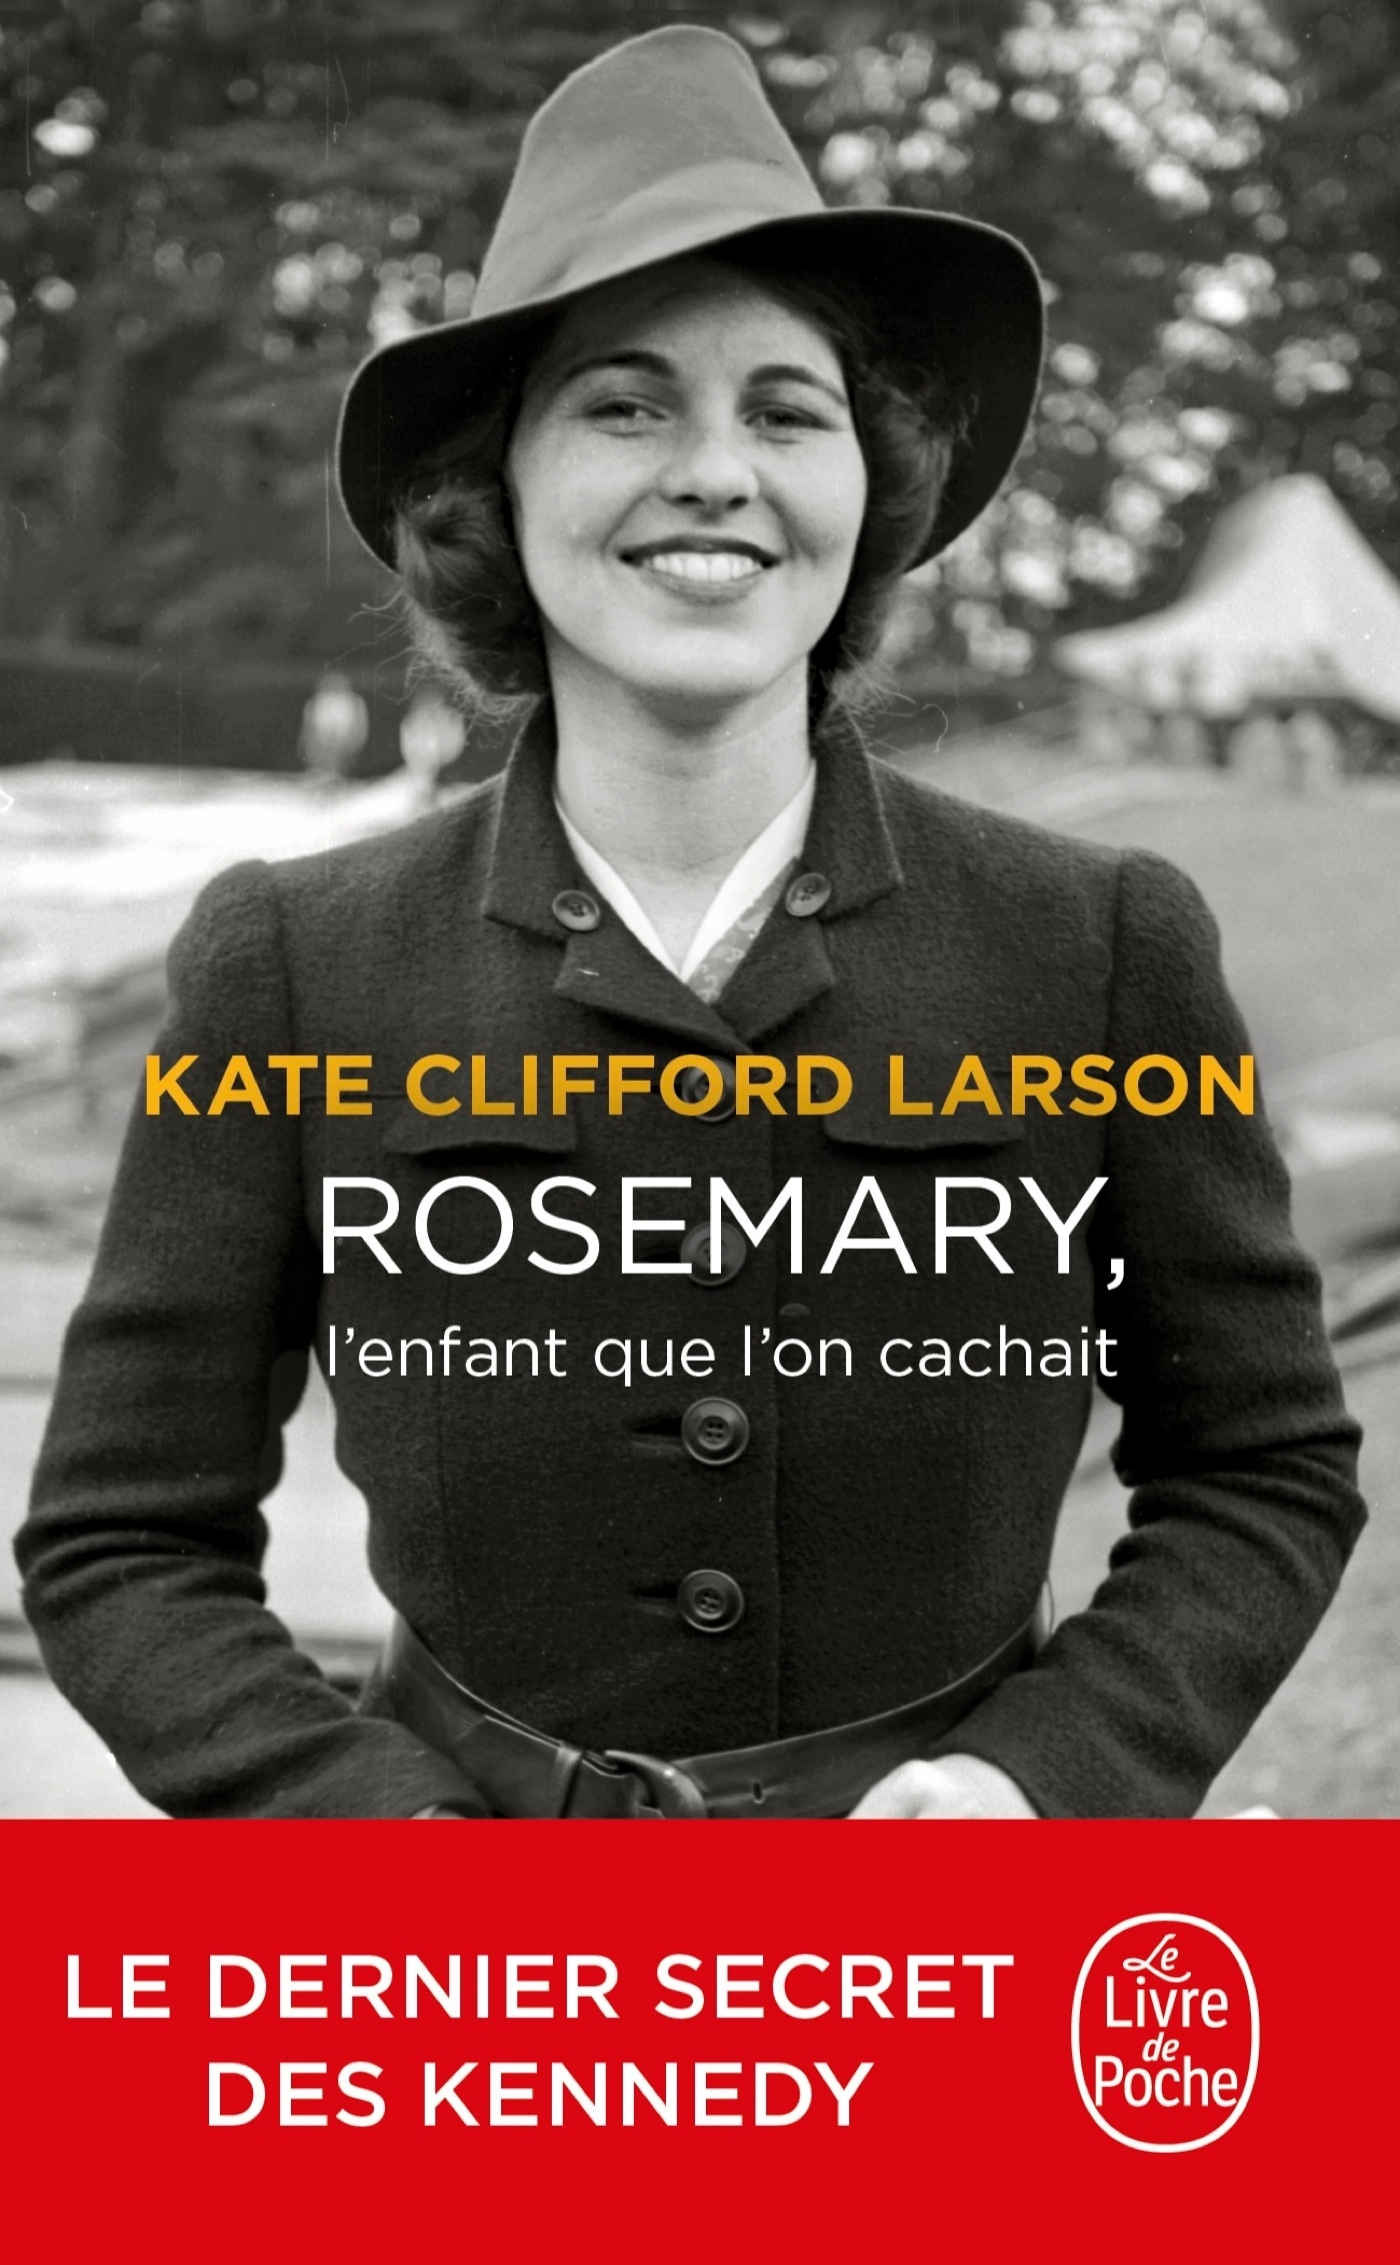 ROSEMARY, L'ENFANT QUE L'ON CACHAIT